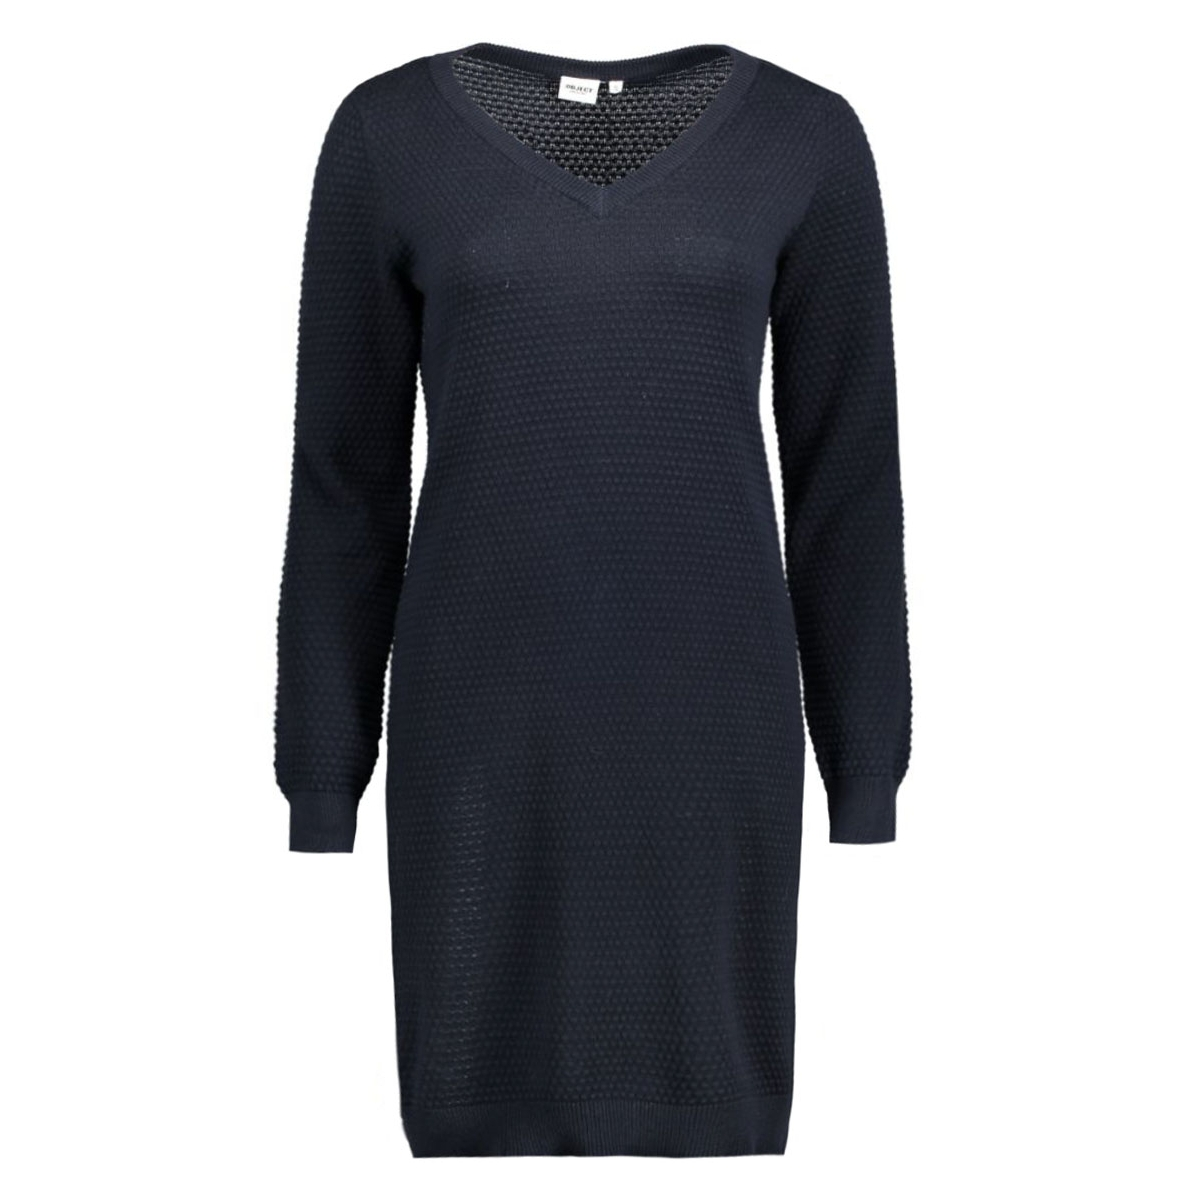 objbernice l/s knit dress 86 23022671 object jurk sky captain